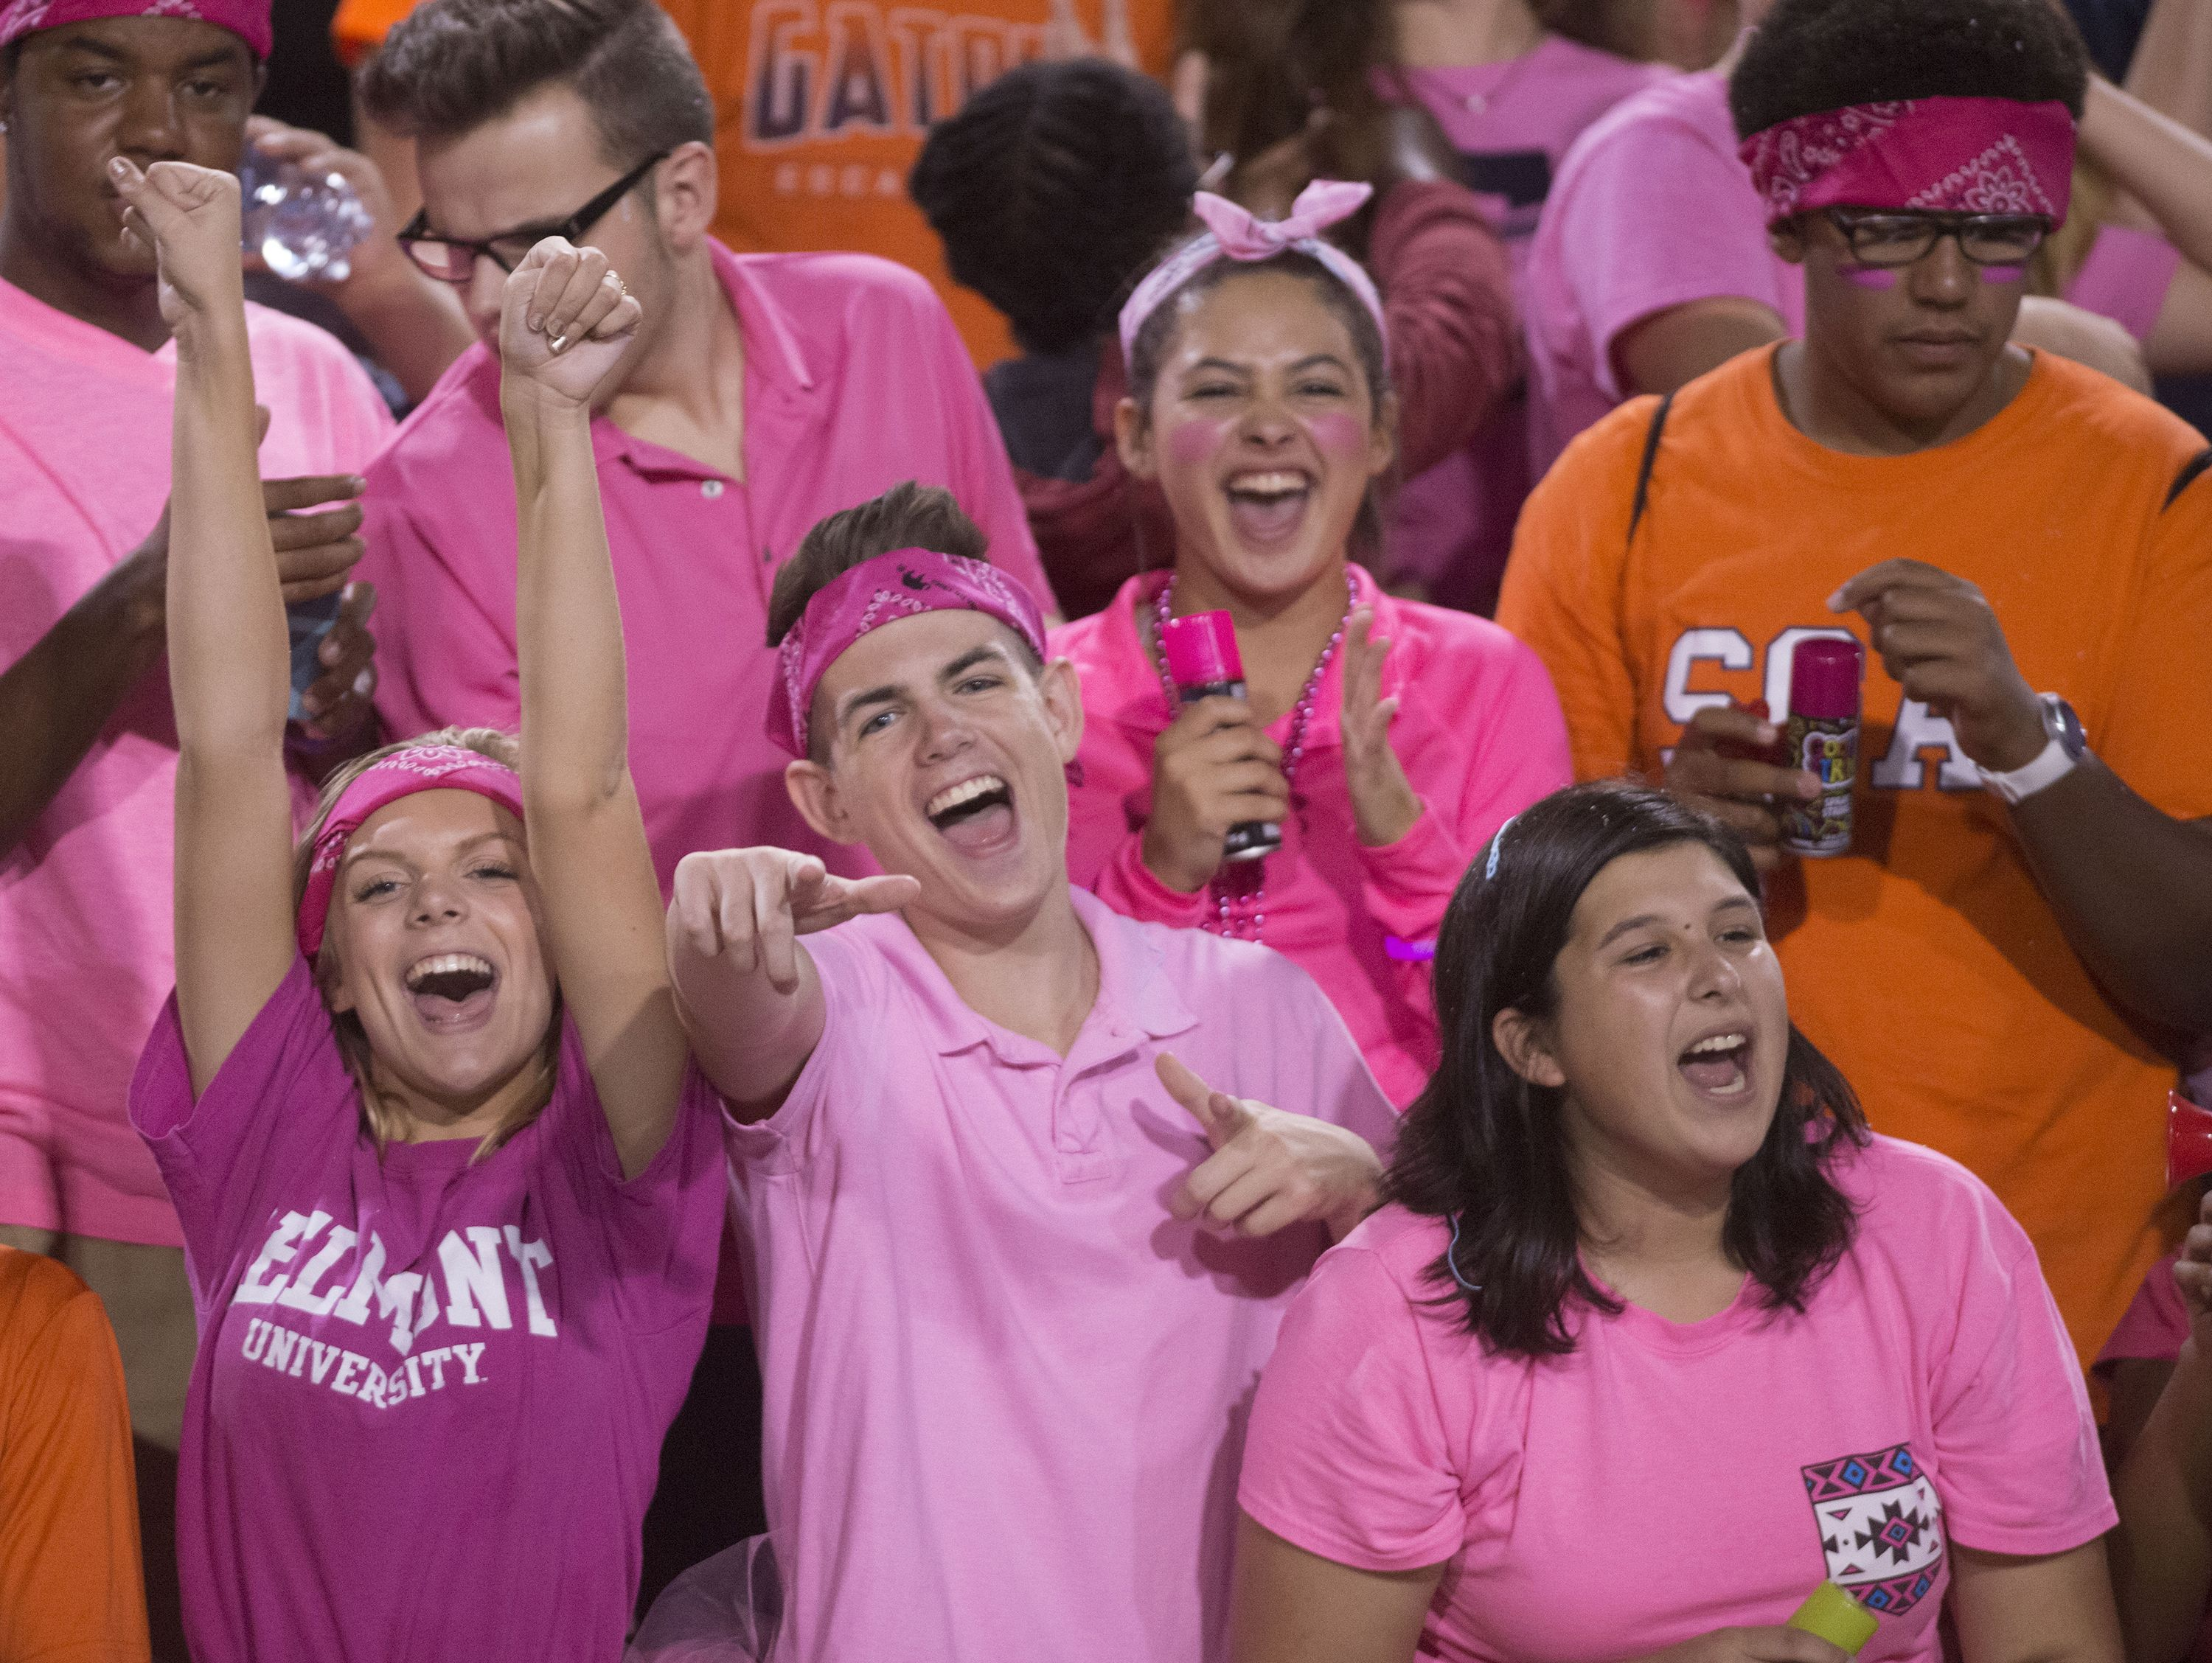 Escambia High School football fan cheers for the home team during Friday night's game against Navarre High School.